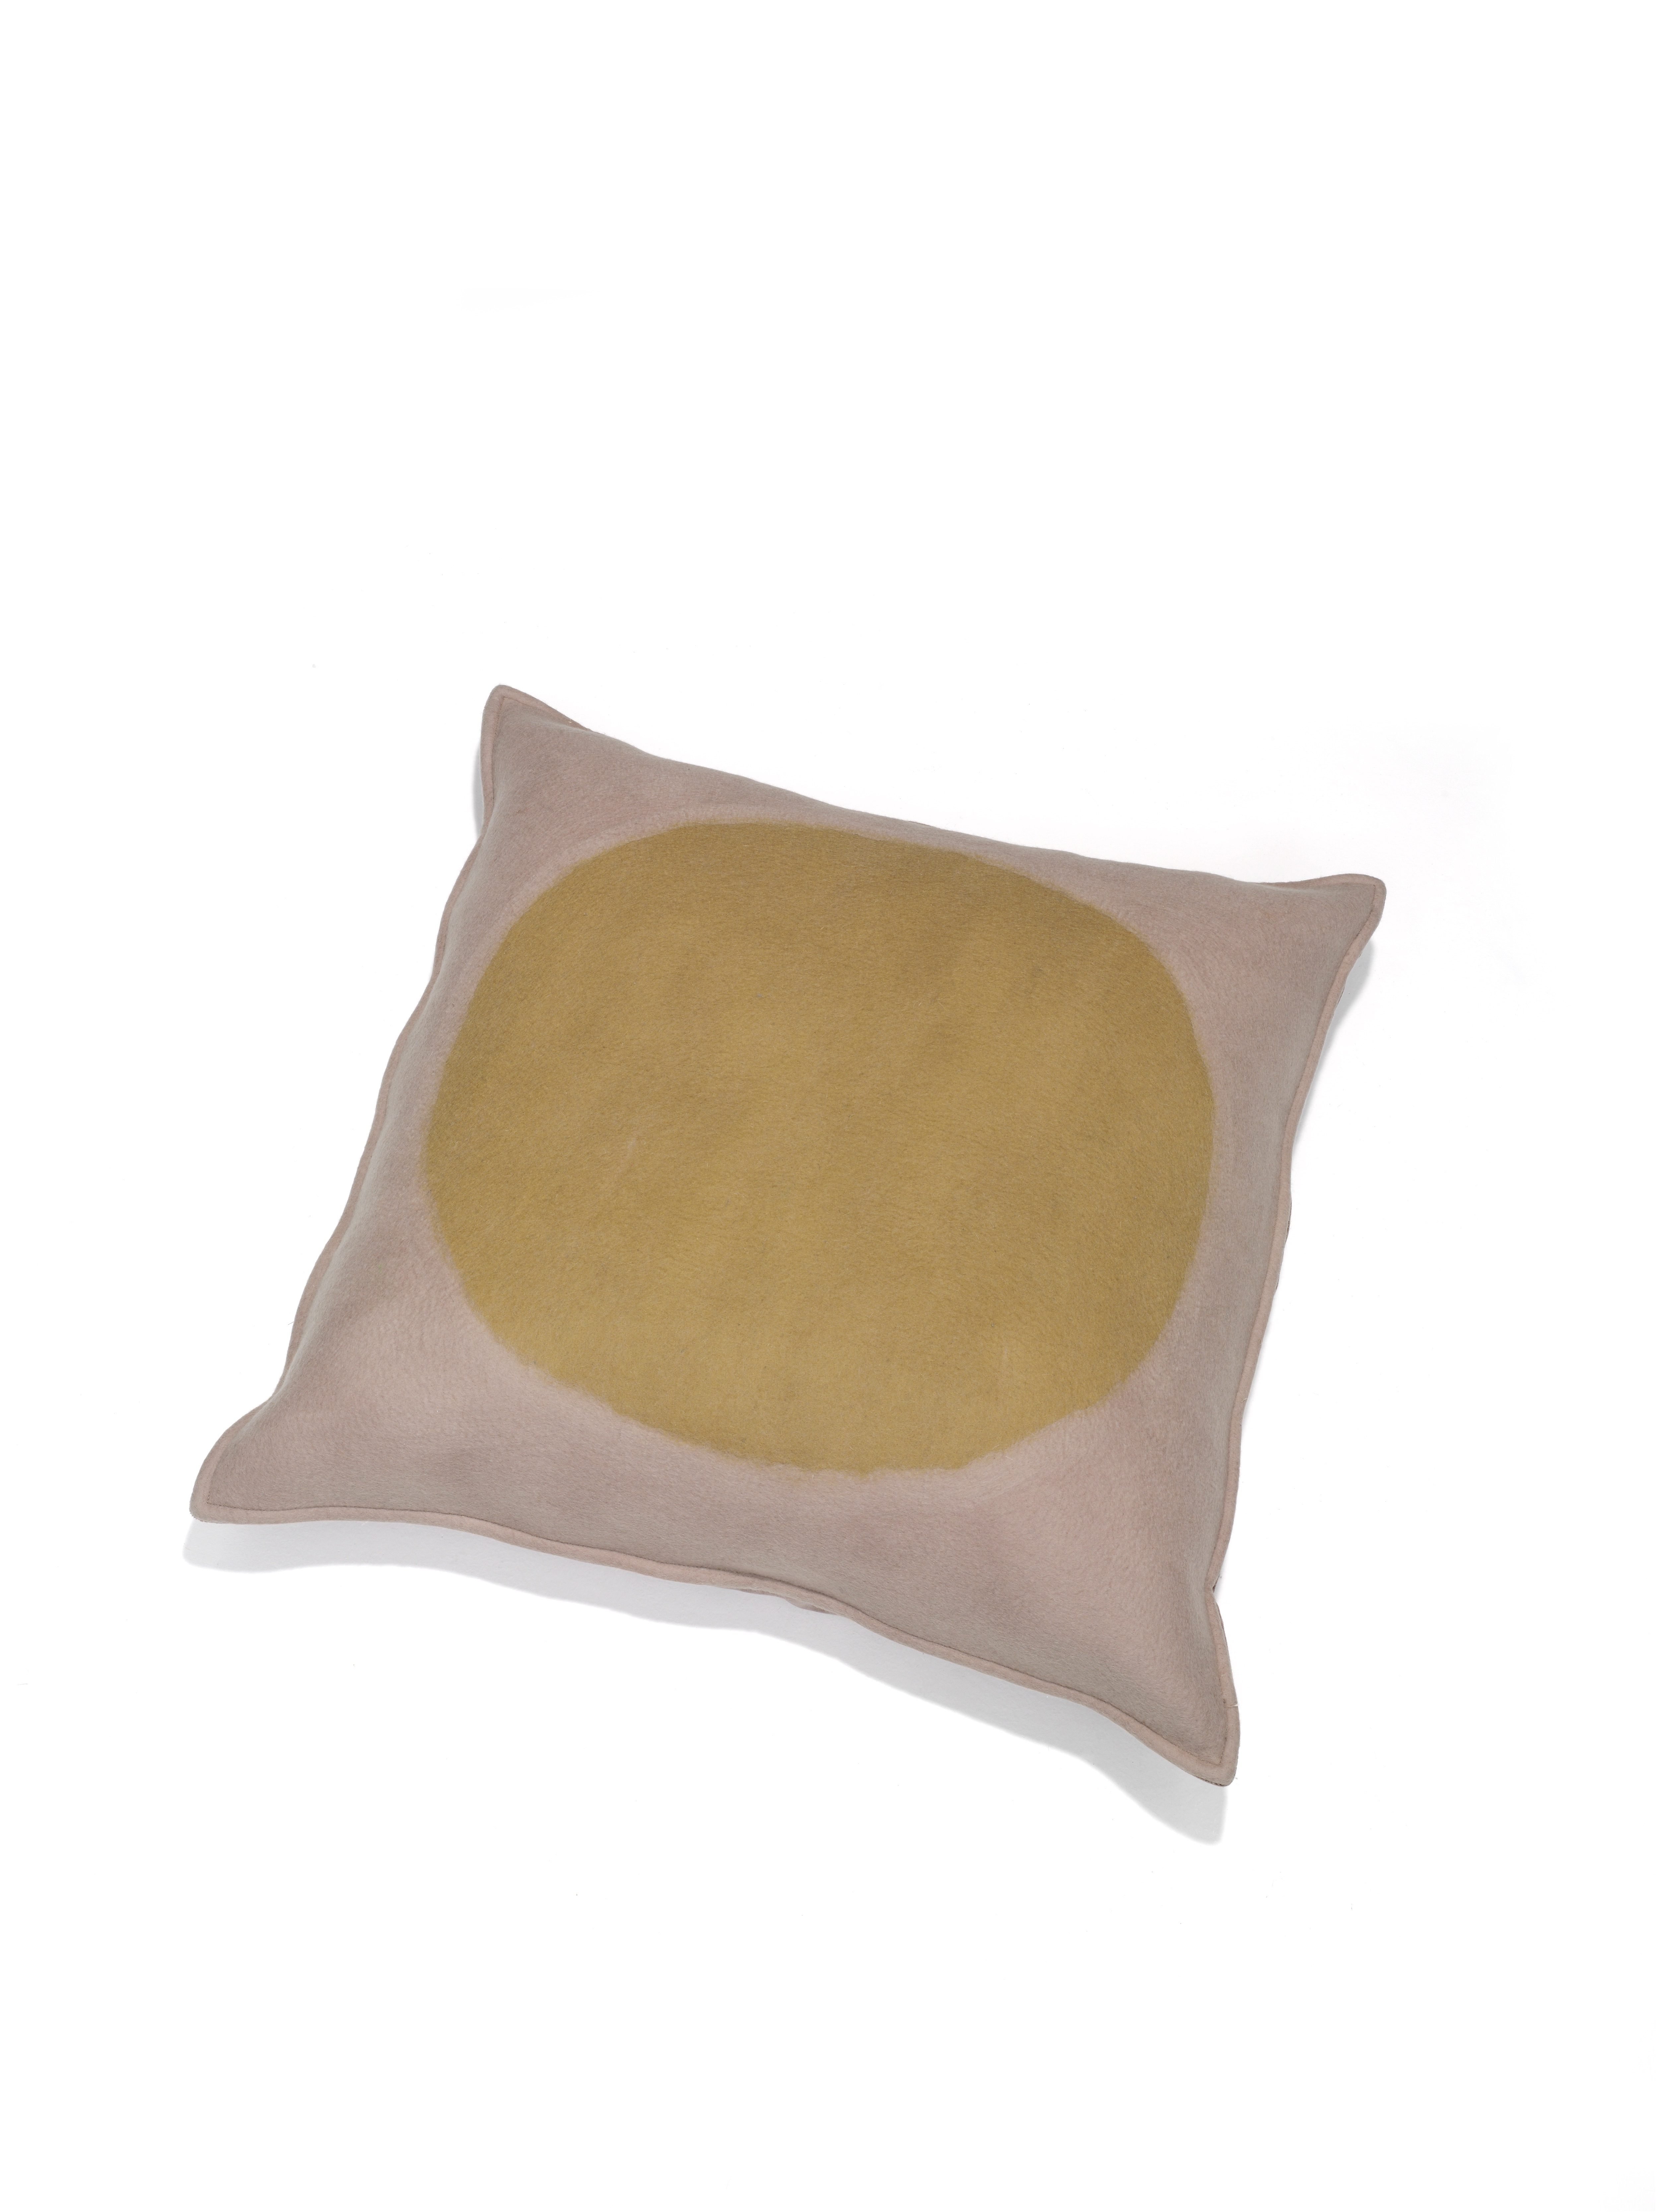 M_and_Otto for Linteloo Glow floor pillow